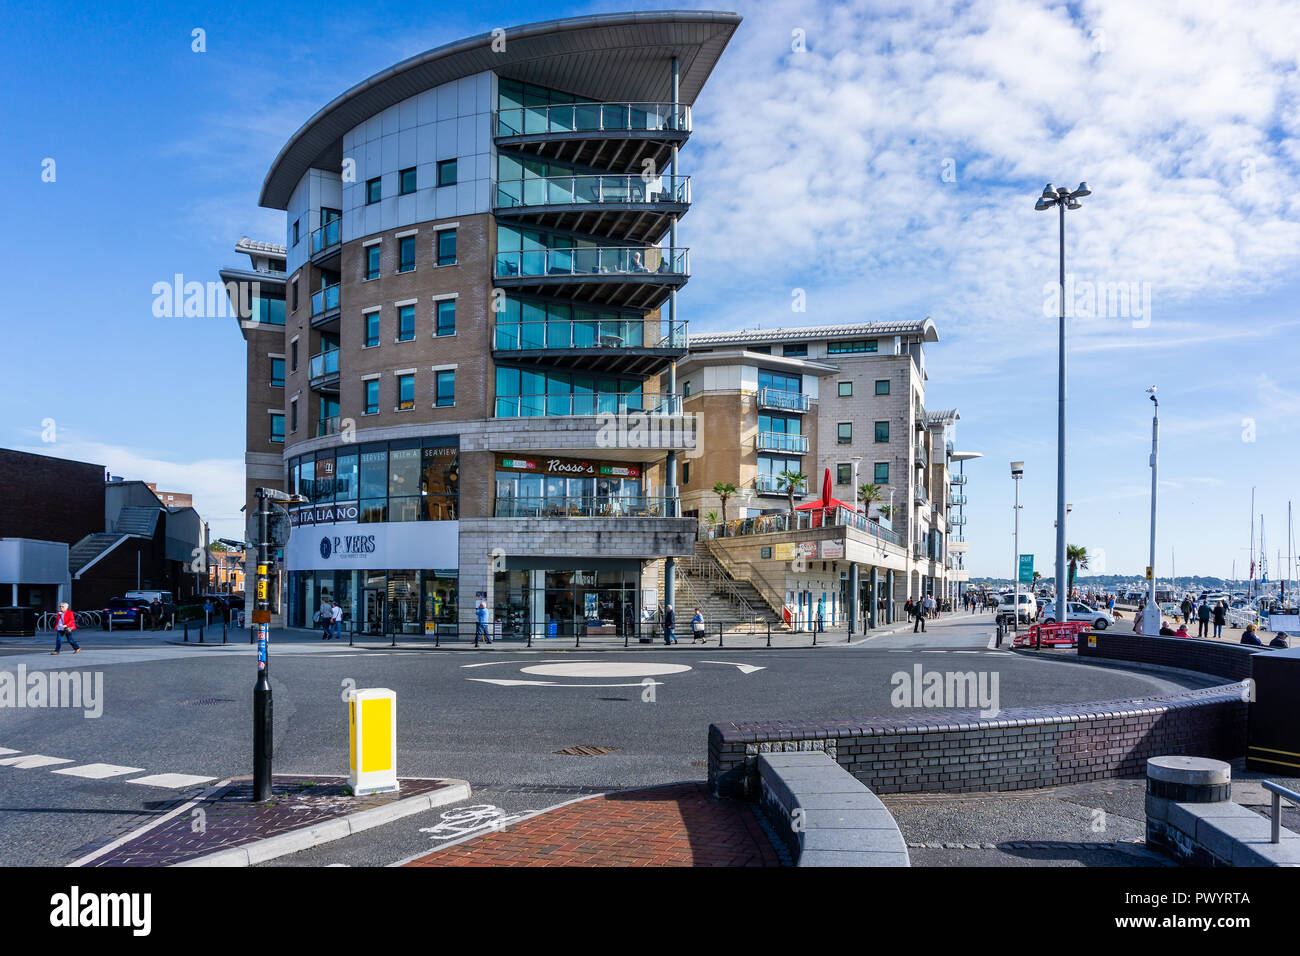 Modern block of luxury flats on the sea front at Poole Harbour in Dorset, UK on 18 October 2018 - Stock Image